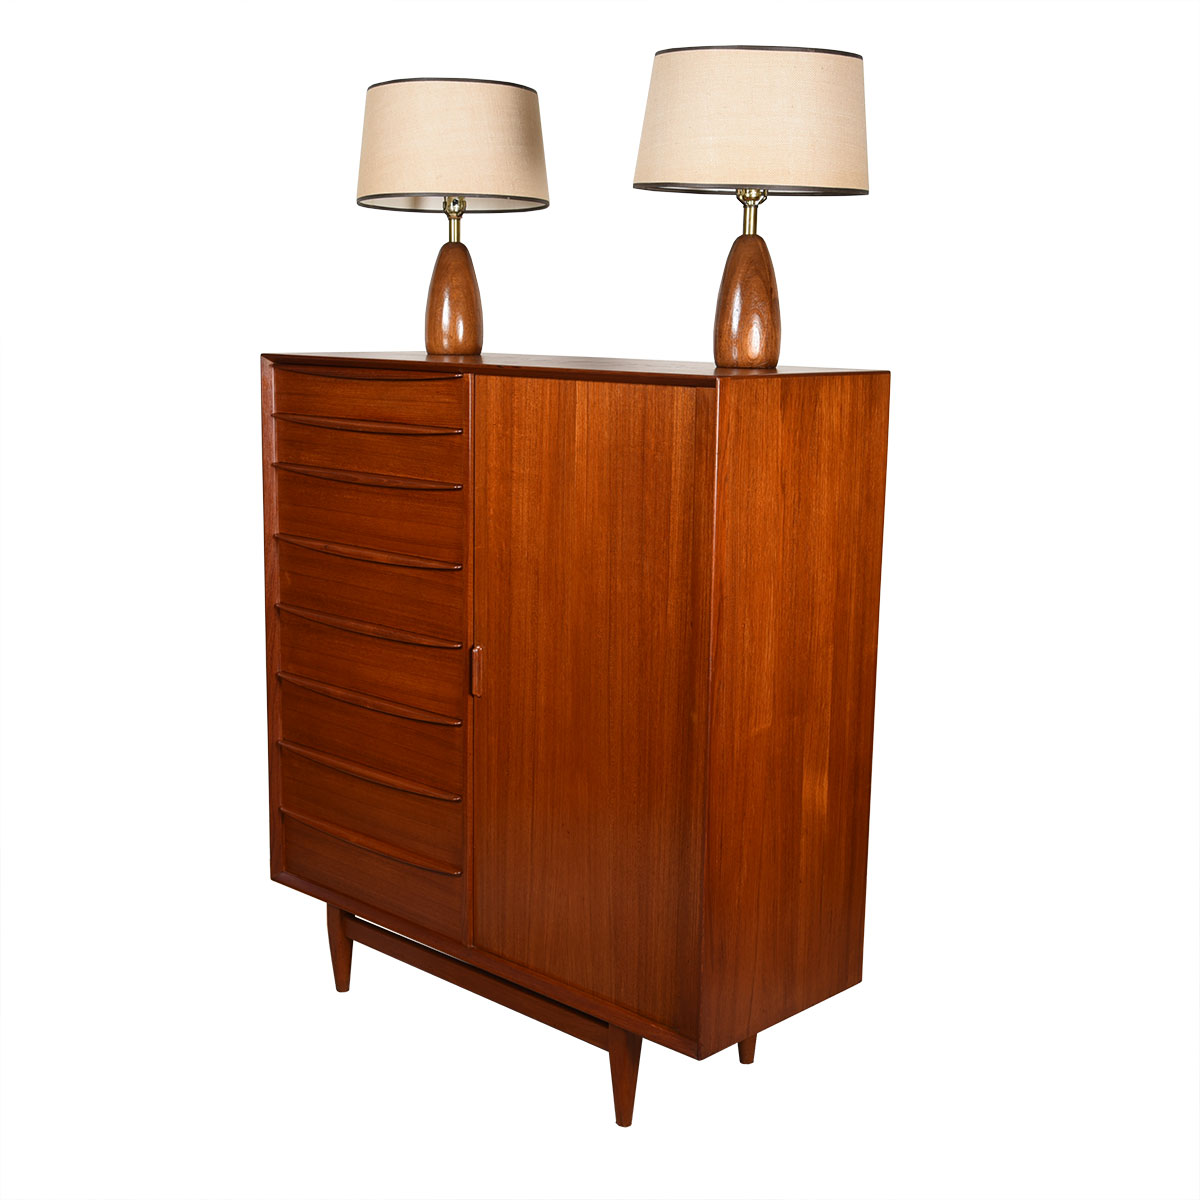 Svend Madsen Danish Teak Tambour Door Tall Dresser / Gentleman's Chest